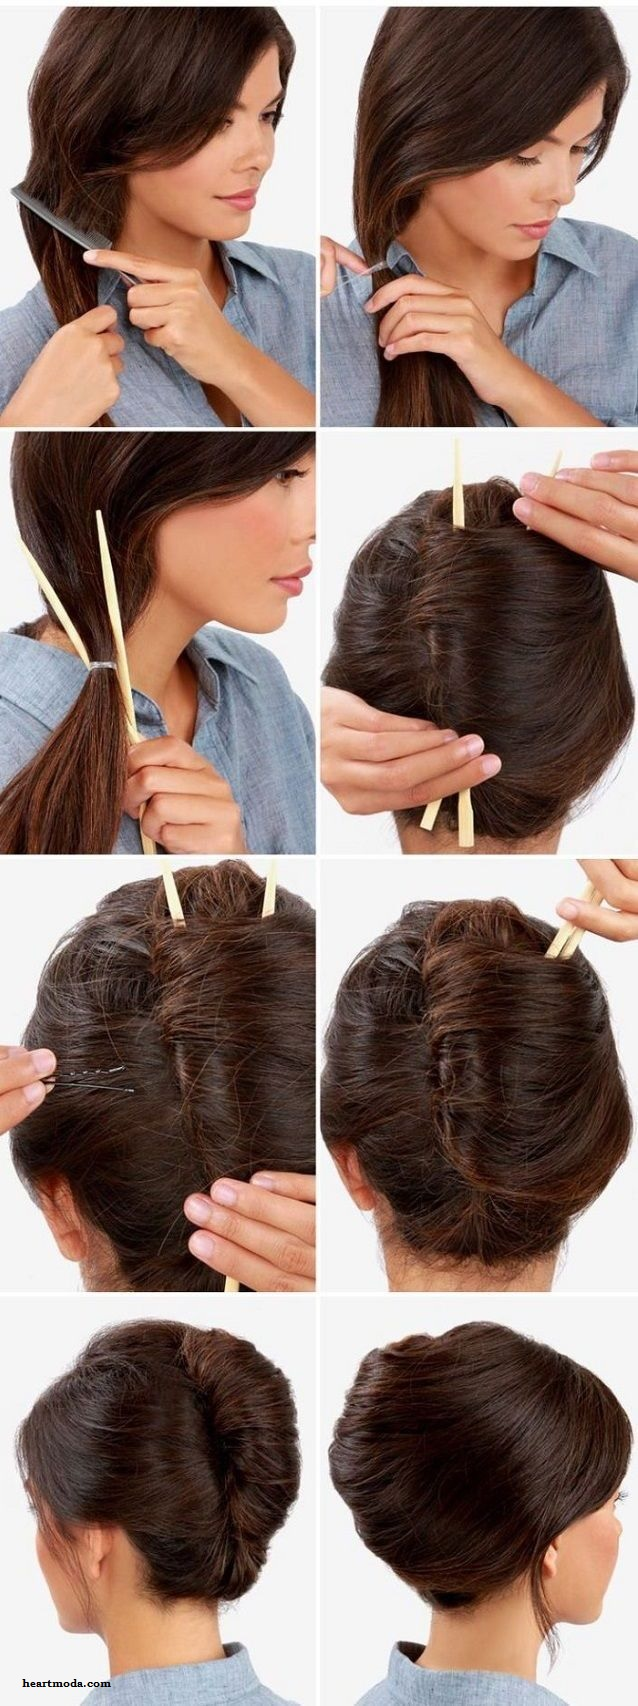 coiffure-simple-facile-21